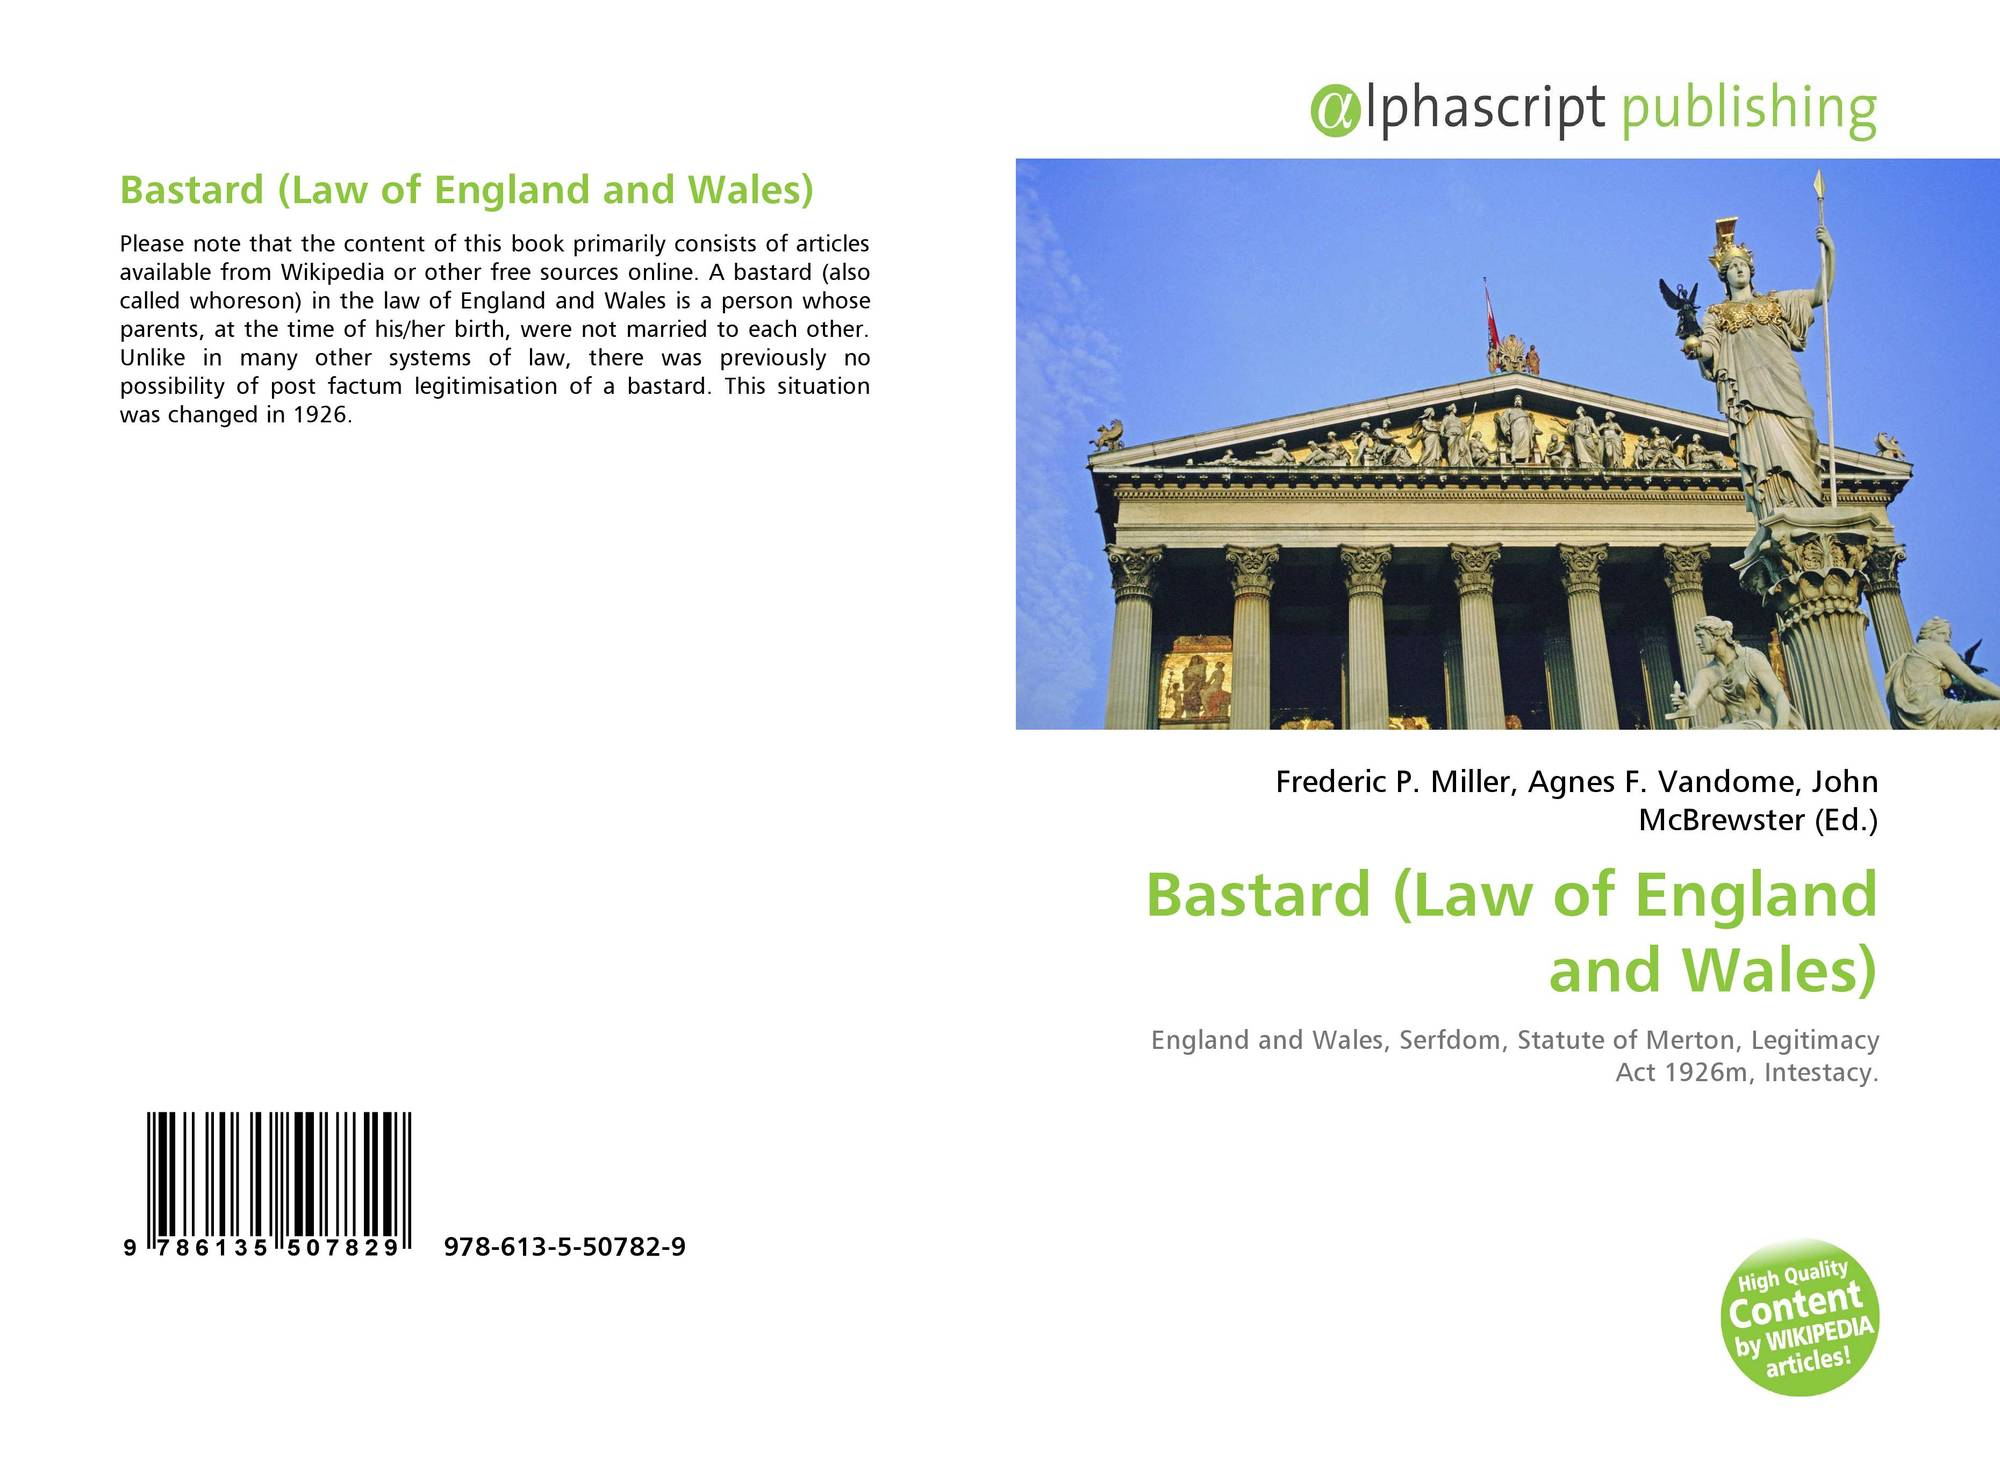 how are laws made in england and wales English law is a legal system that applies to both england and wales under the umbrella of the united remember, though, that parliament is made up of hundreds of qualified, elected members, all helping english law is, in fact, the basis for many of the american legal policies and traditions still.